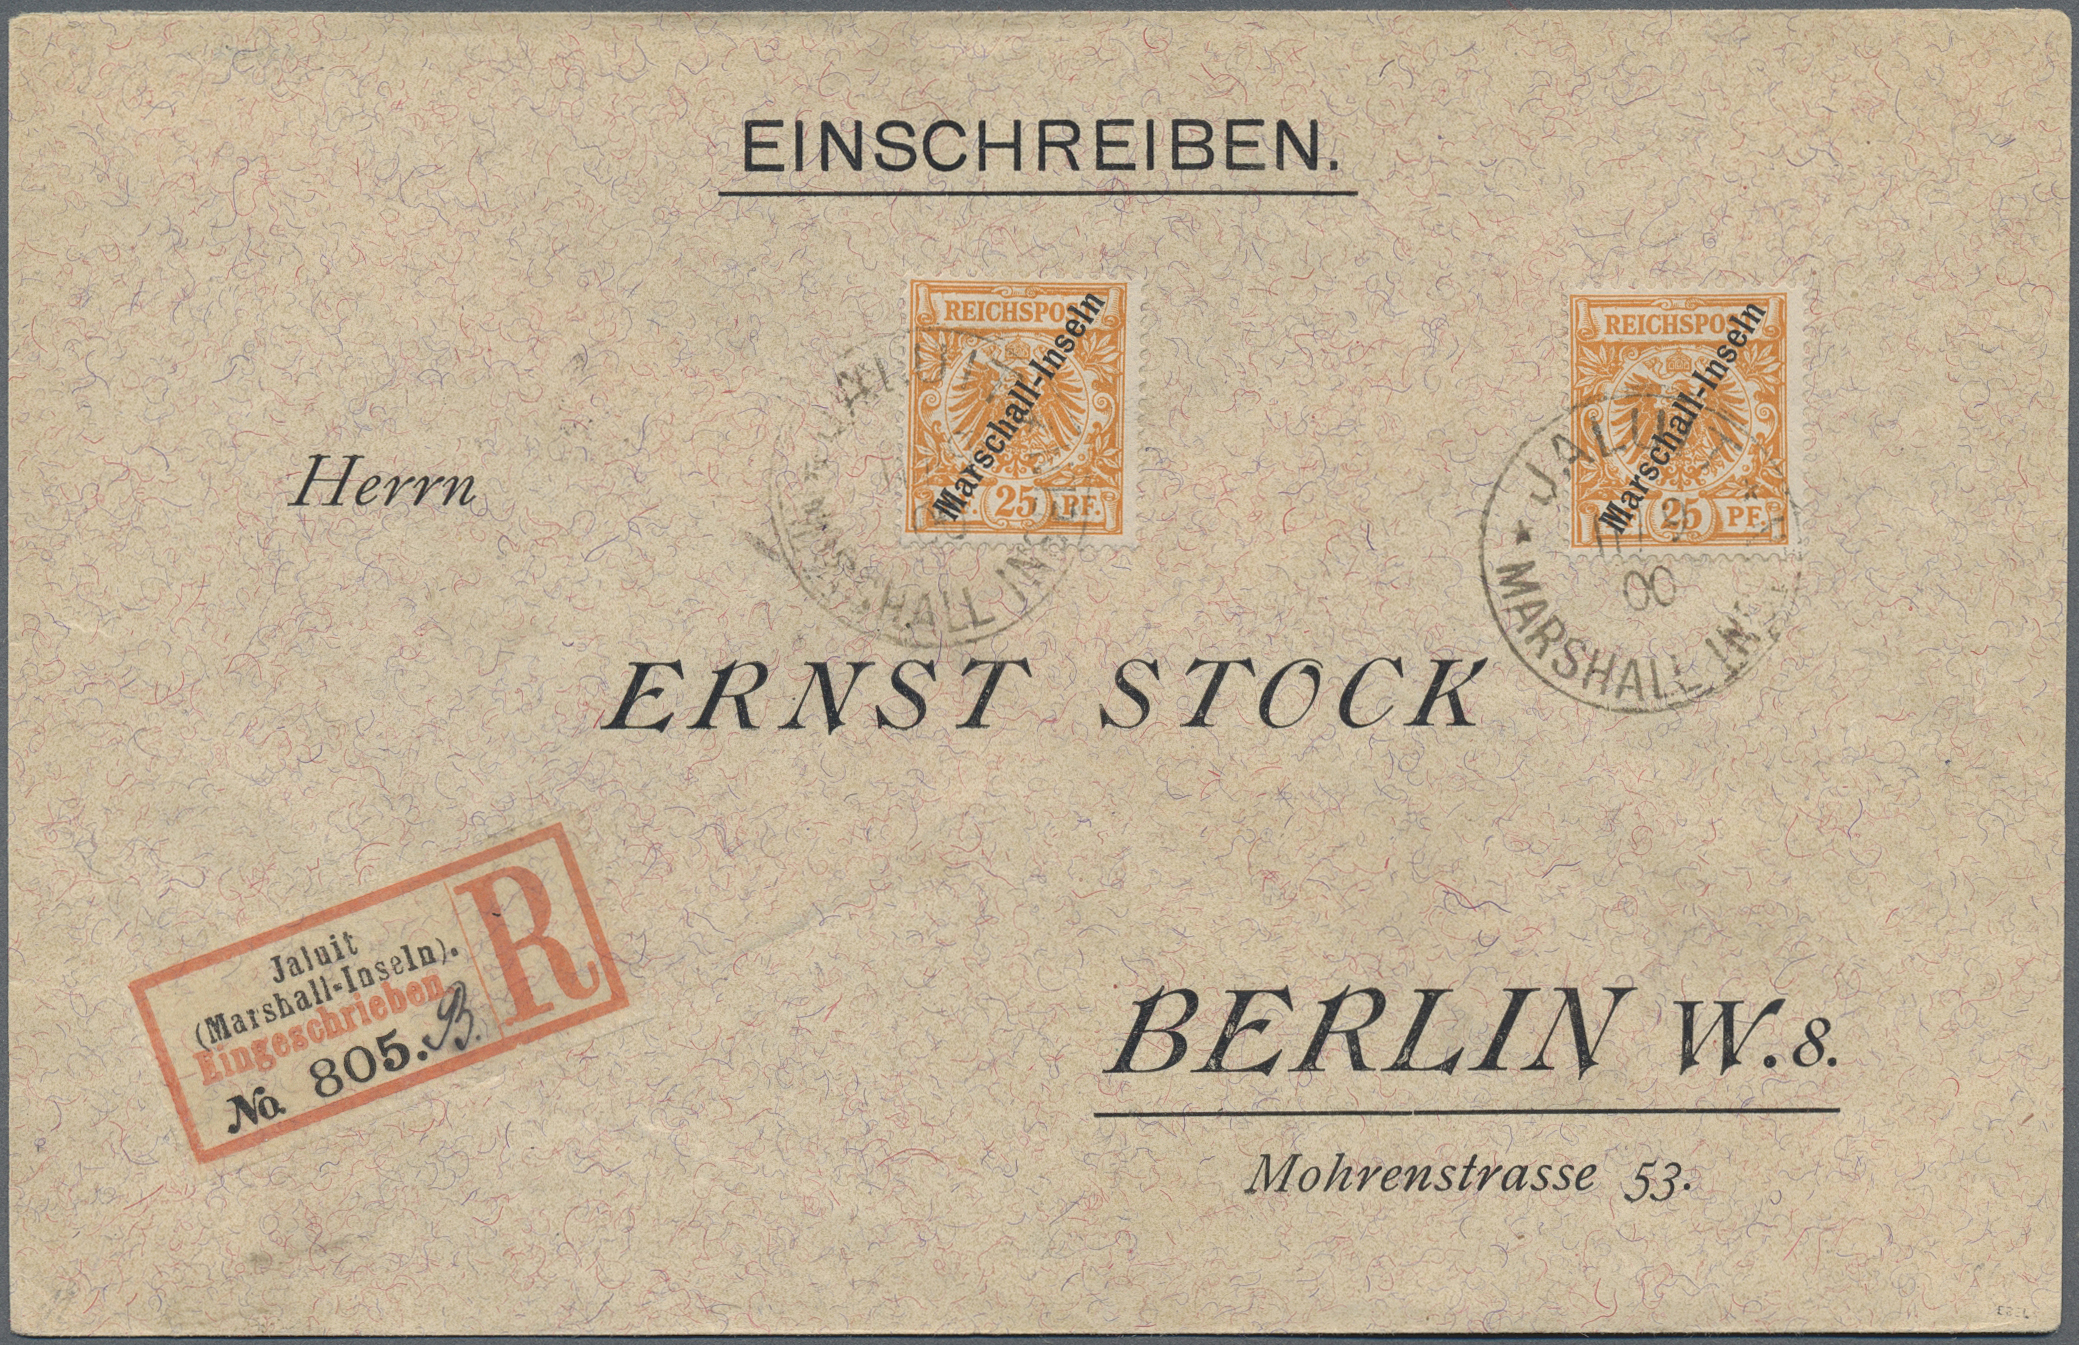 Lot 18769 - Deutsche Kolonien - Marshall-Inseln  -  Auktionshaus Christoph Gärtner GmbH & Co. KG Auction #40 Germany, Picture Post Cards, Collections Overseas, Thematics